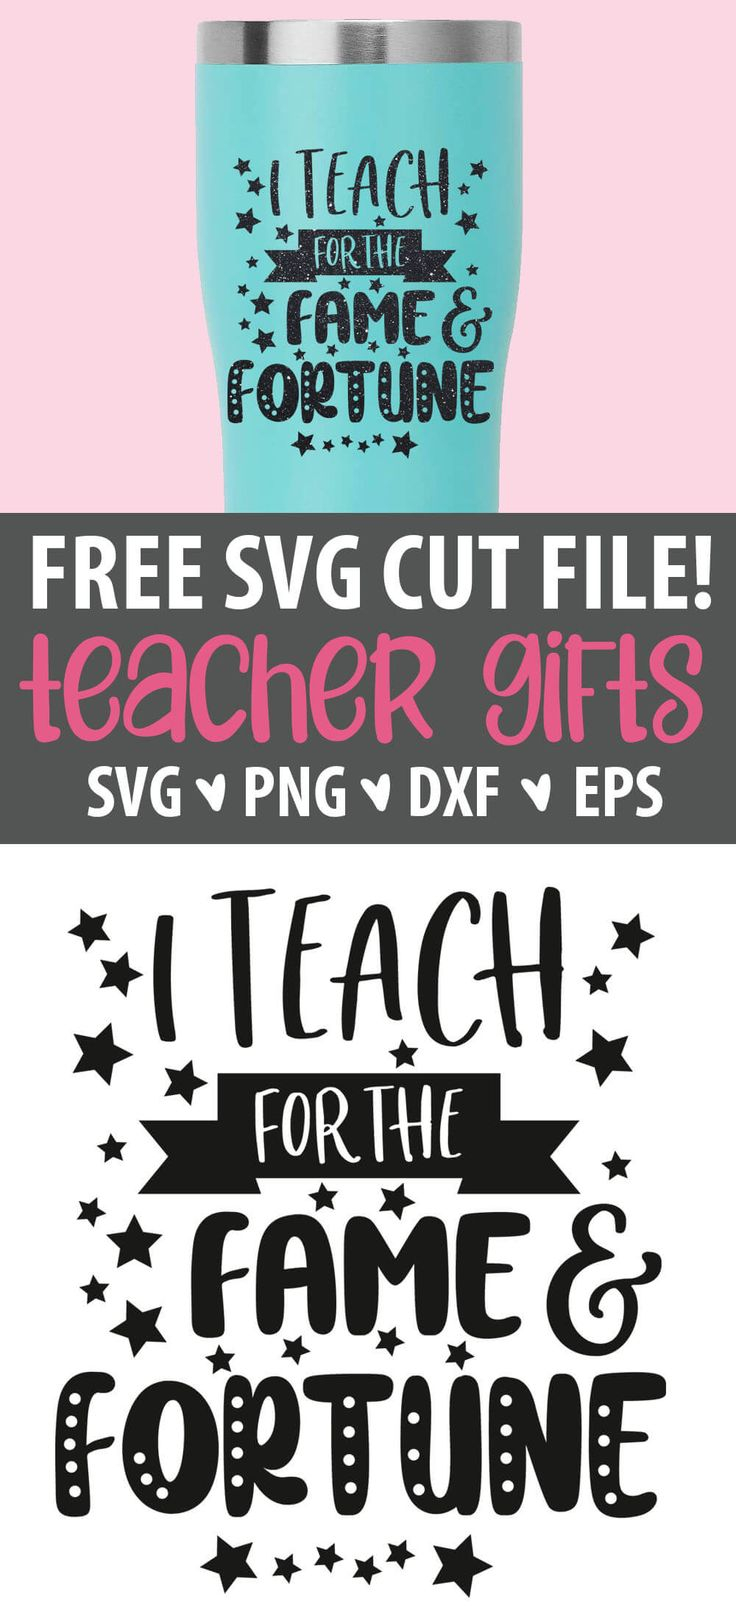 I Teach For The Fame And Fortune Svg – Teacher Within Teacher Appreciation Week 2021